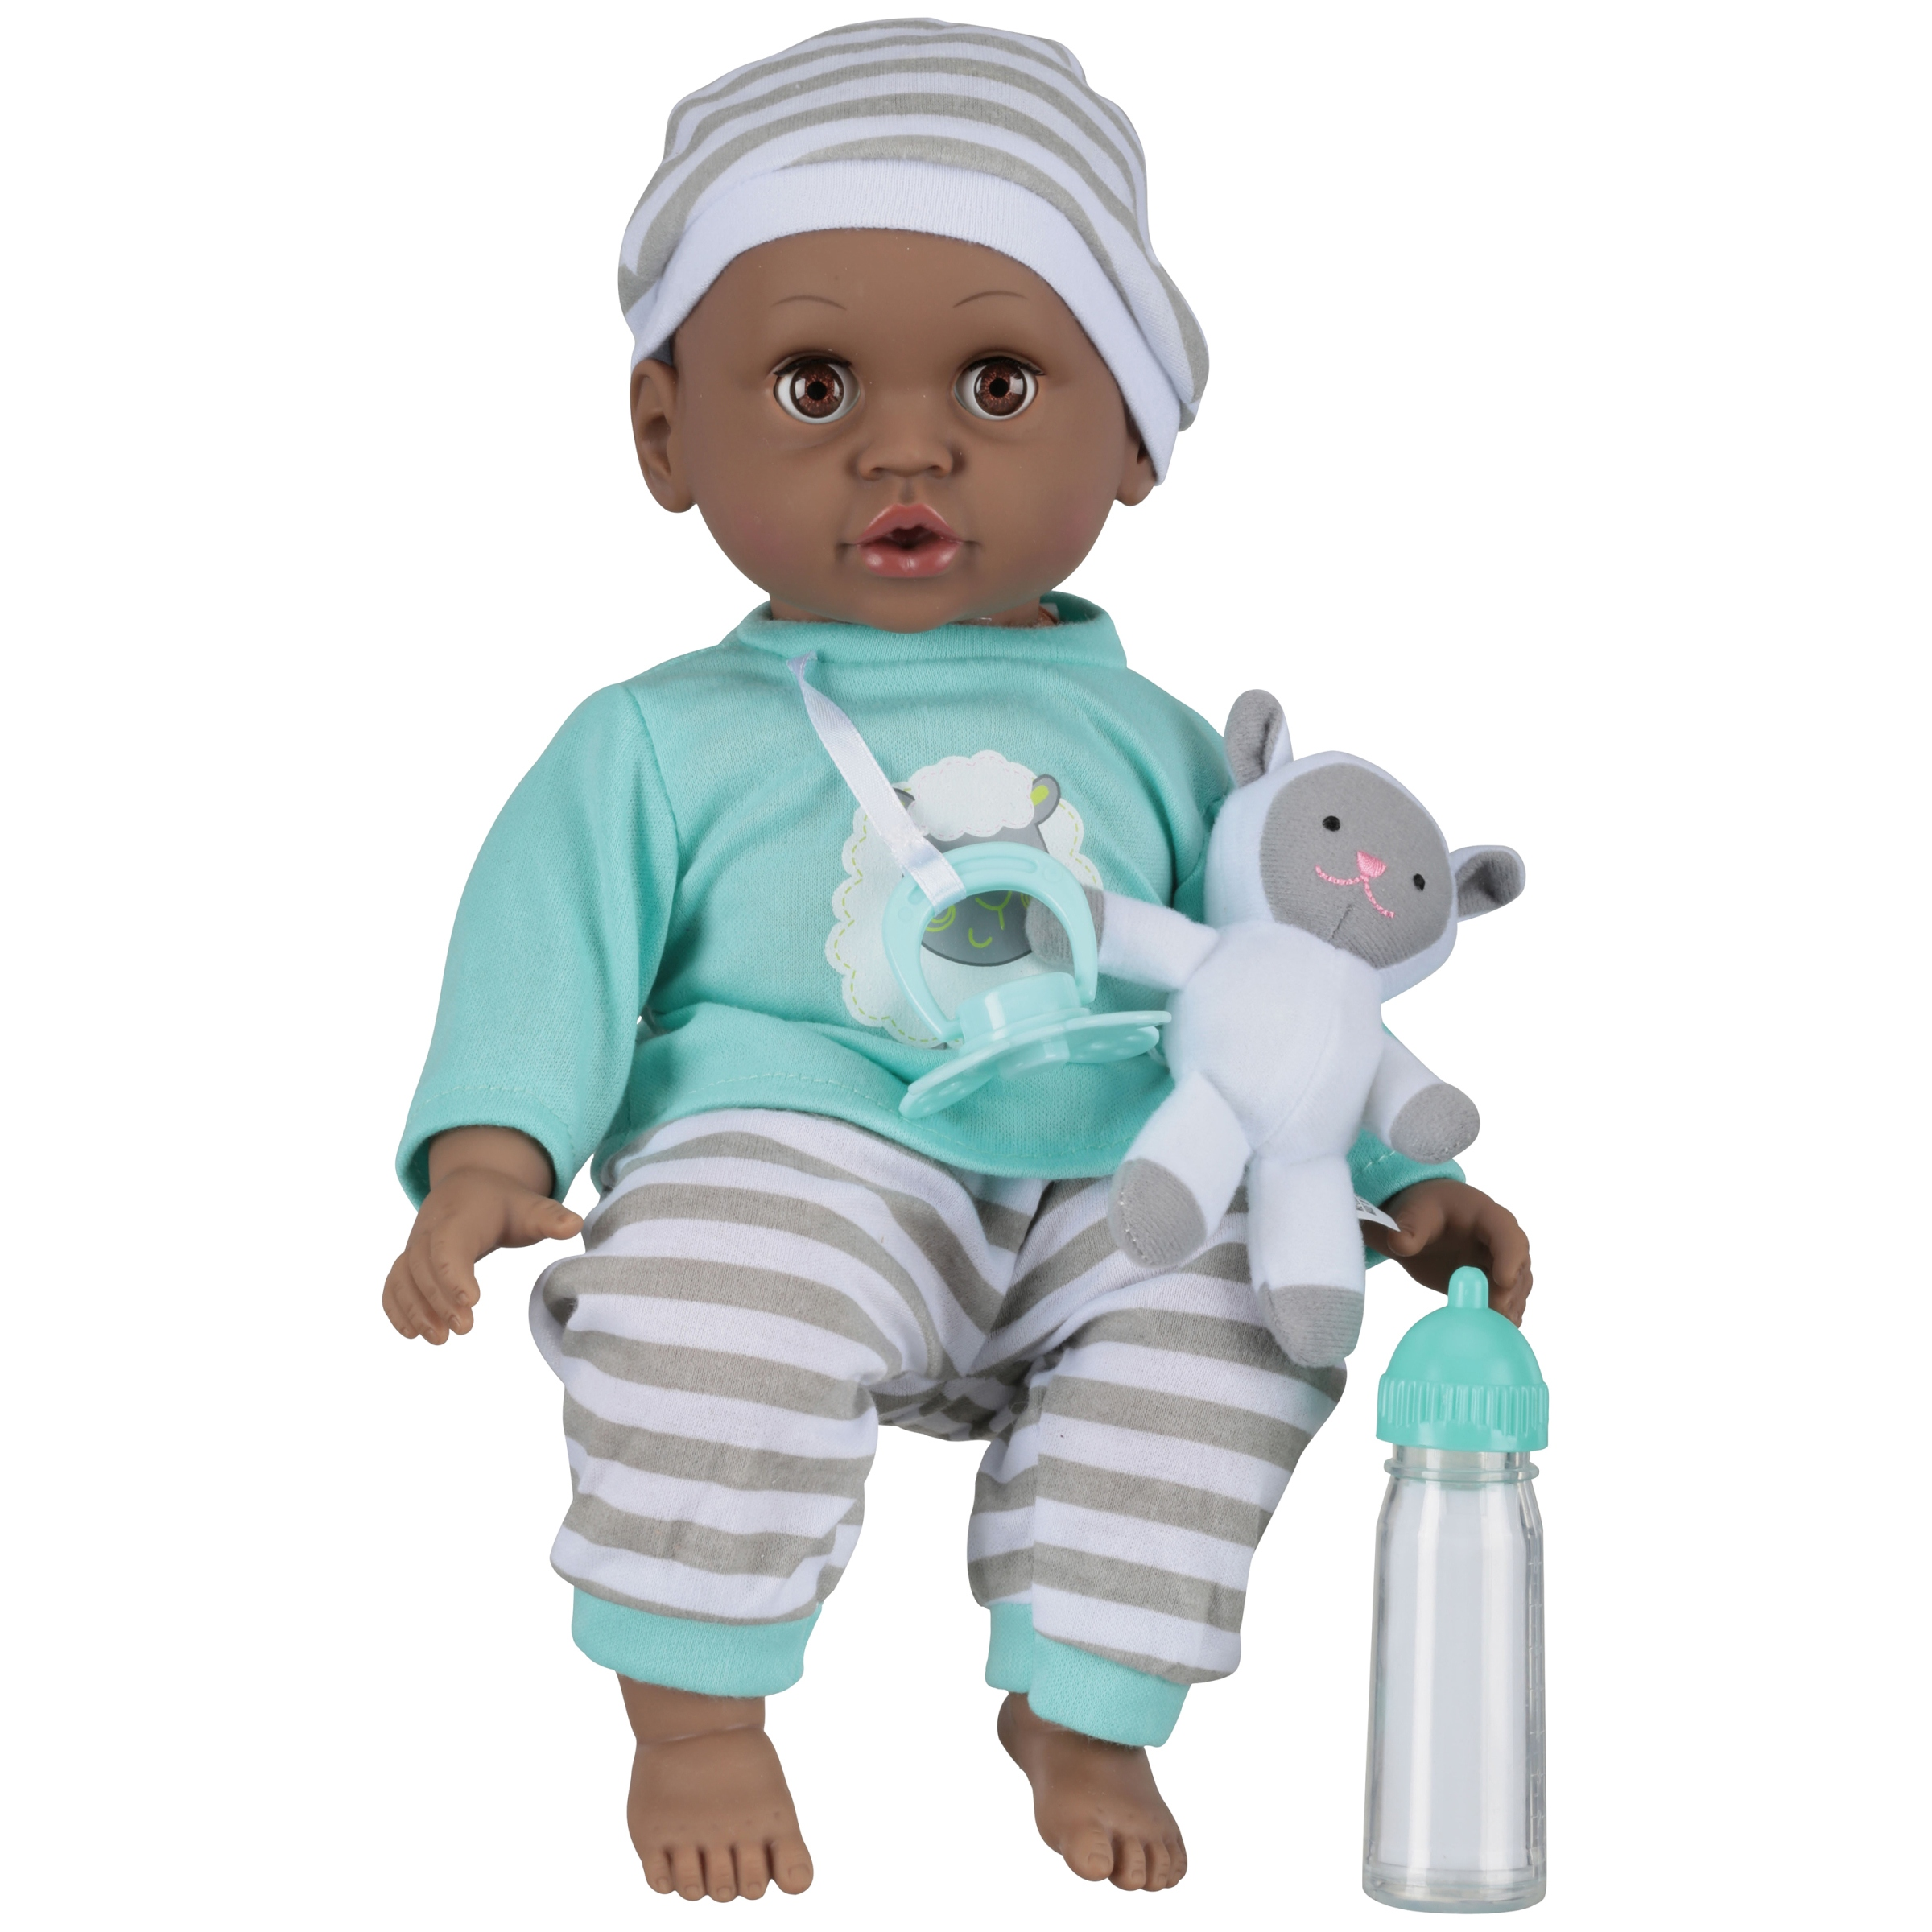 My Sweet Love® Baby Doll & Acccessories 4 pc Box